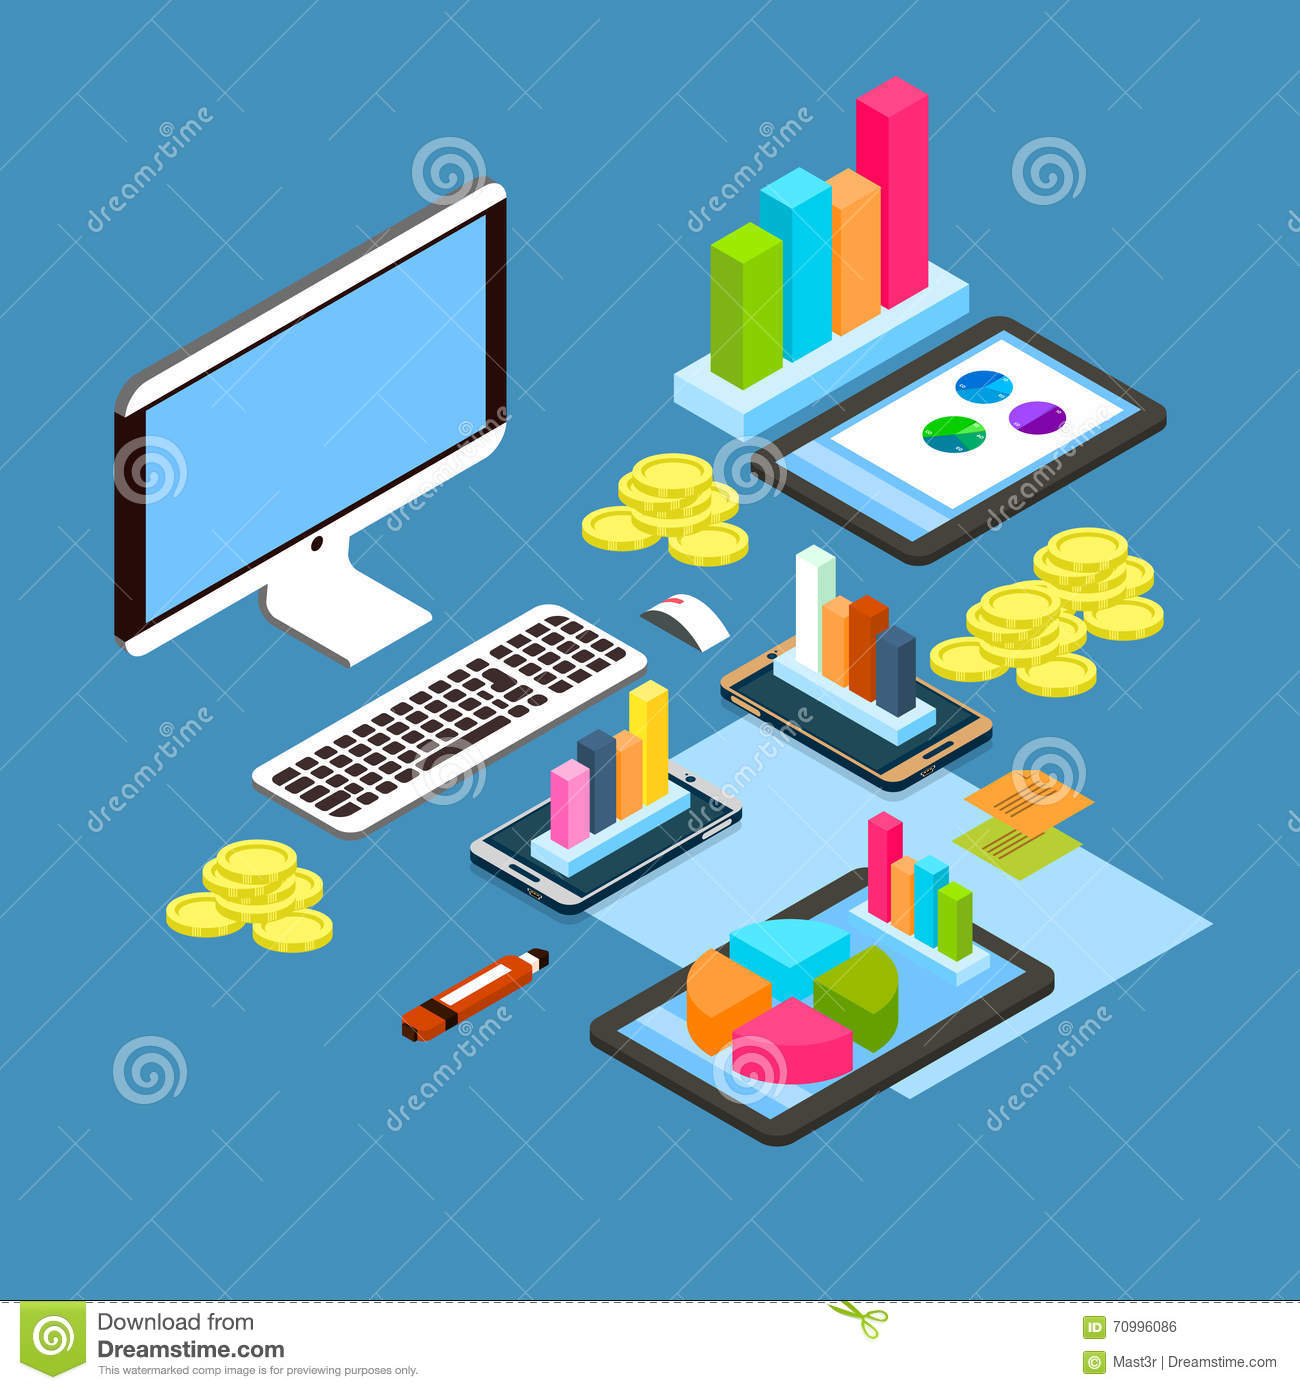 hight resolution of financial graph diagram chart desktop computer workplace finance concept 3d isometric workplace